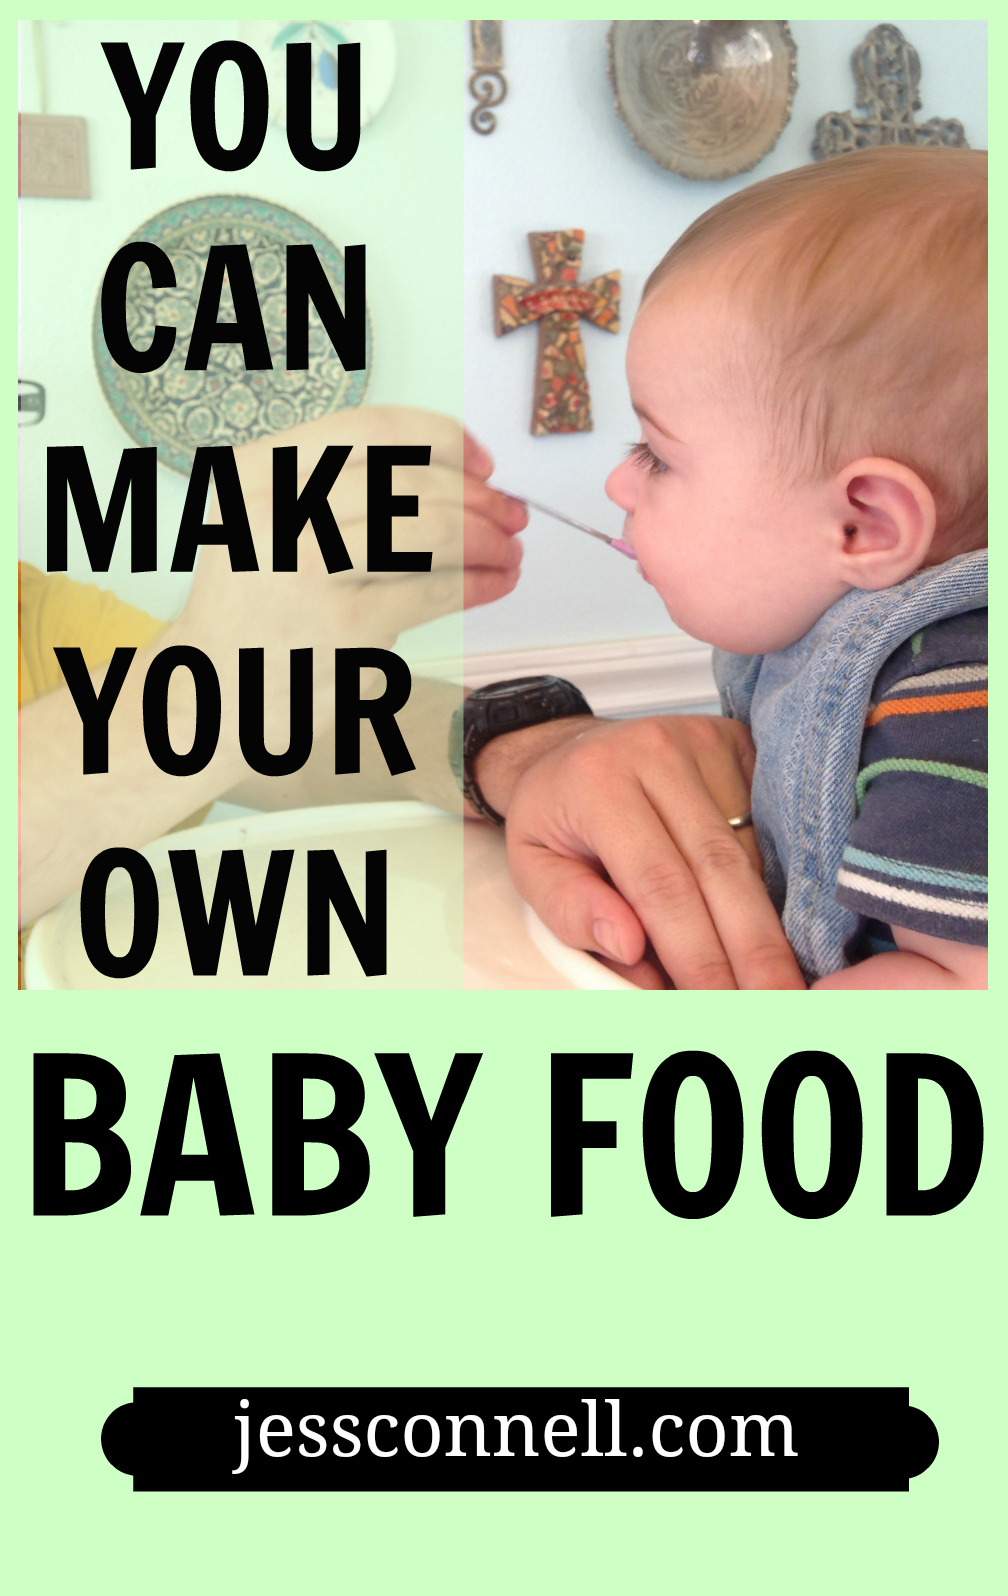 You CAN Make Your Own Baby Food // step-by-step real-life tutorial from a mom who's done it with 7 babies // jessconnell.com